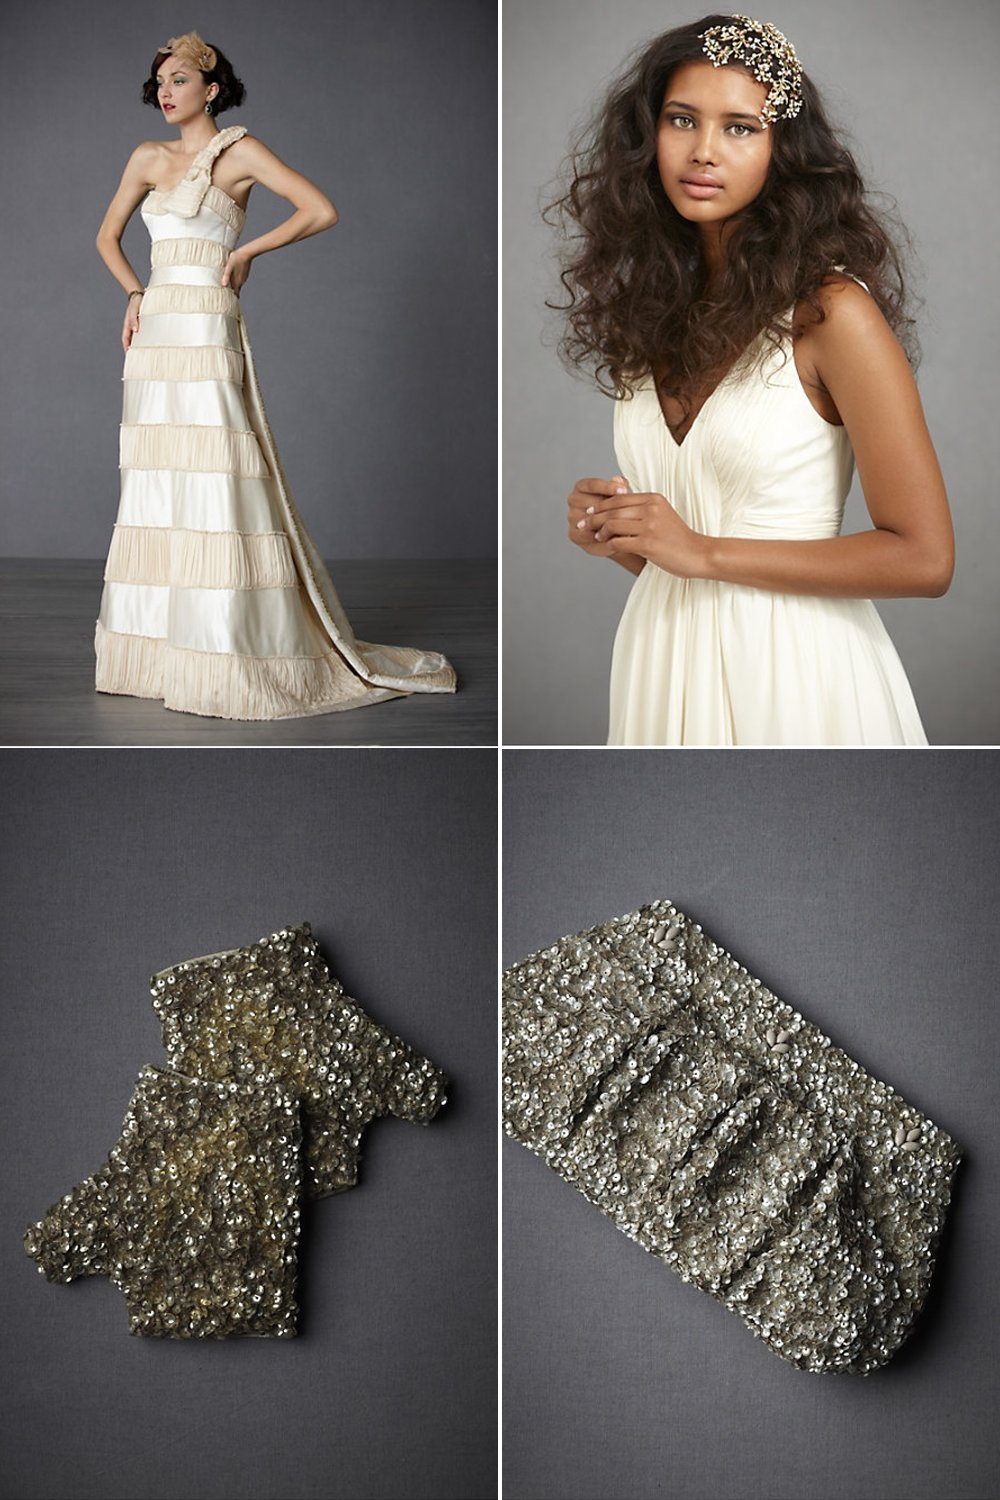 Champagne BHLDN wedding dress, sparkly metallic bridal gloves and clutch